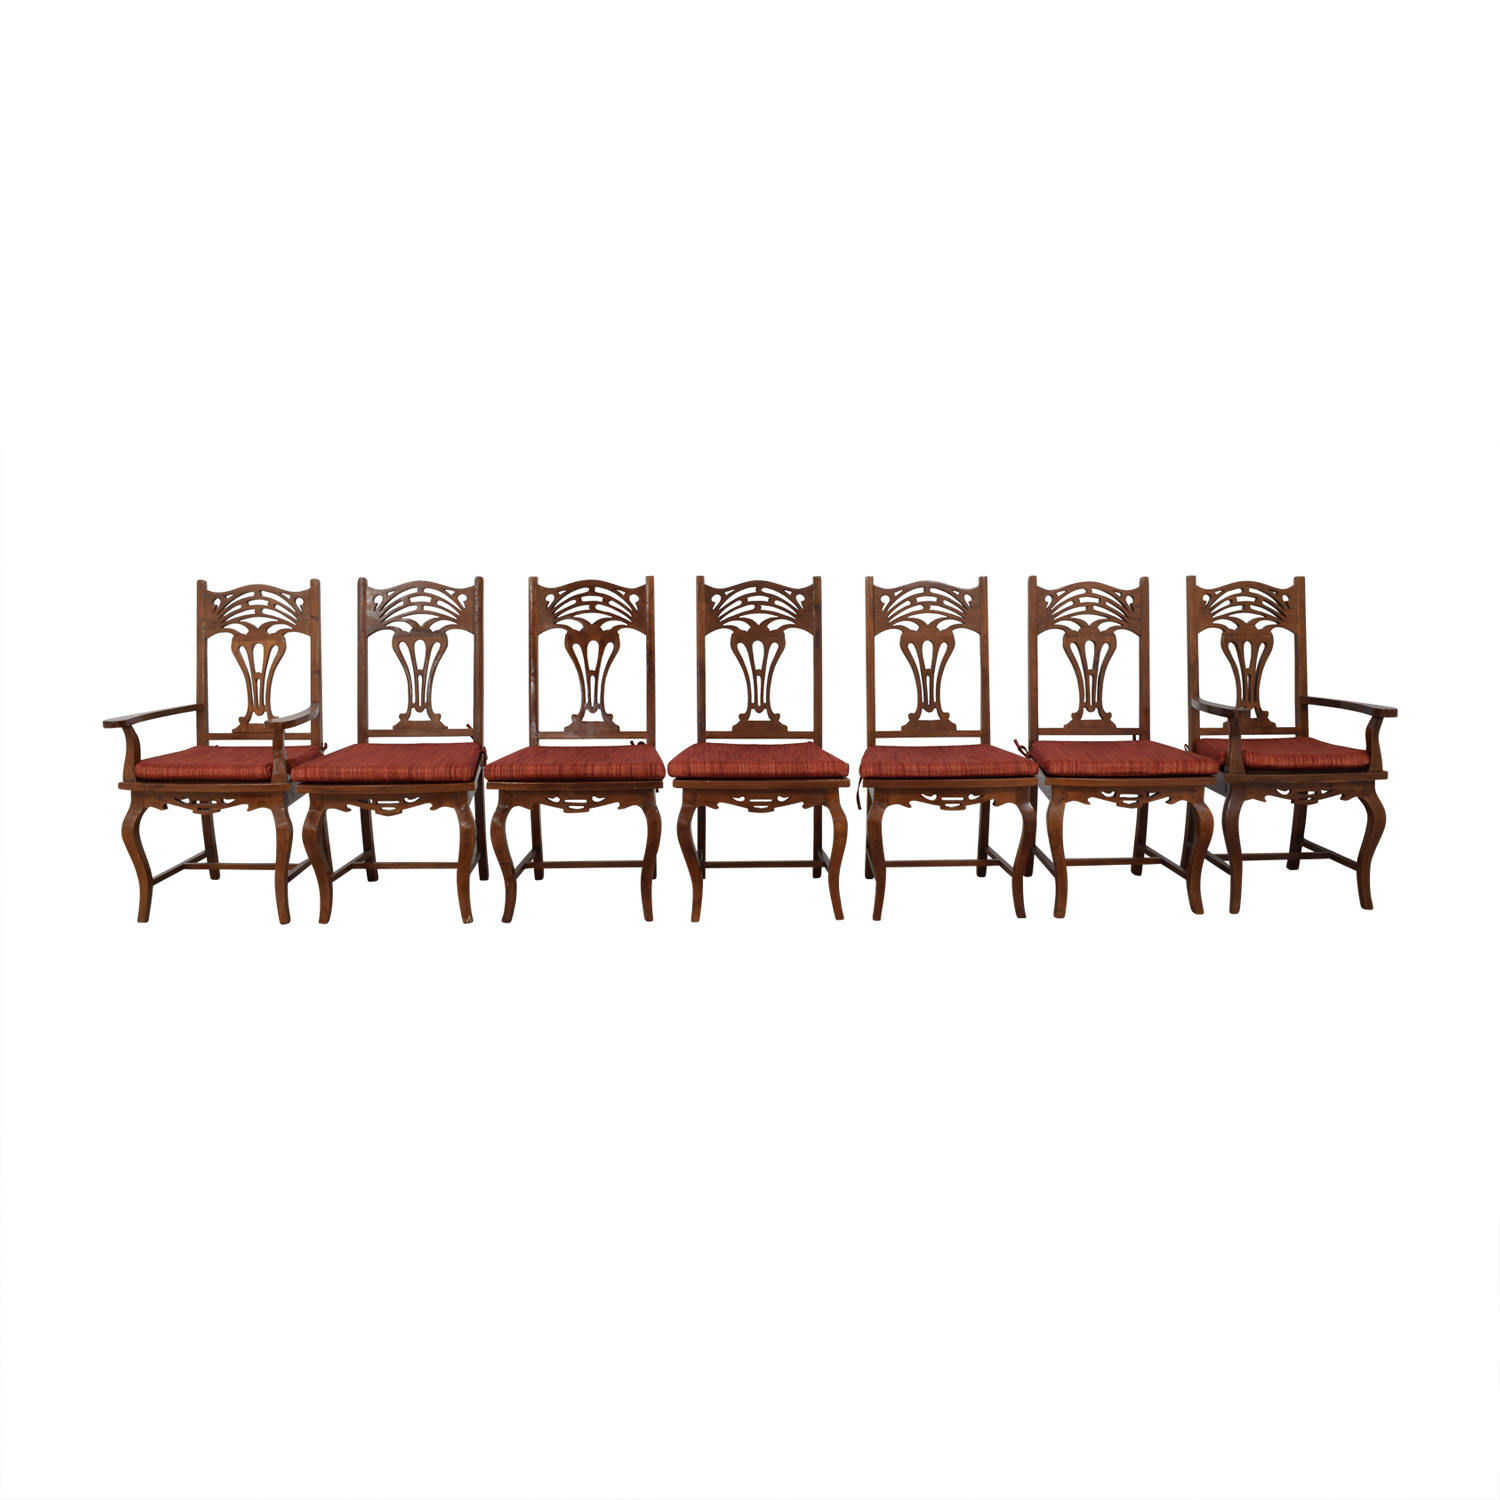 Custom Set of Dining Room Chairs price